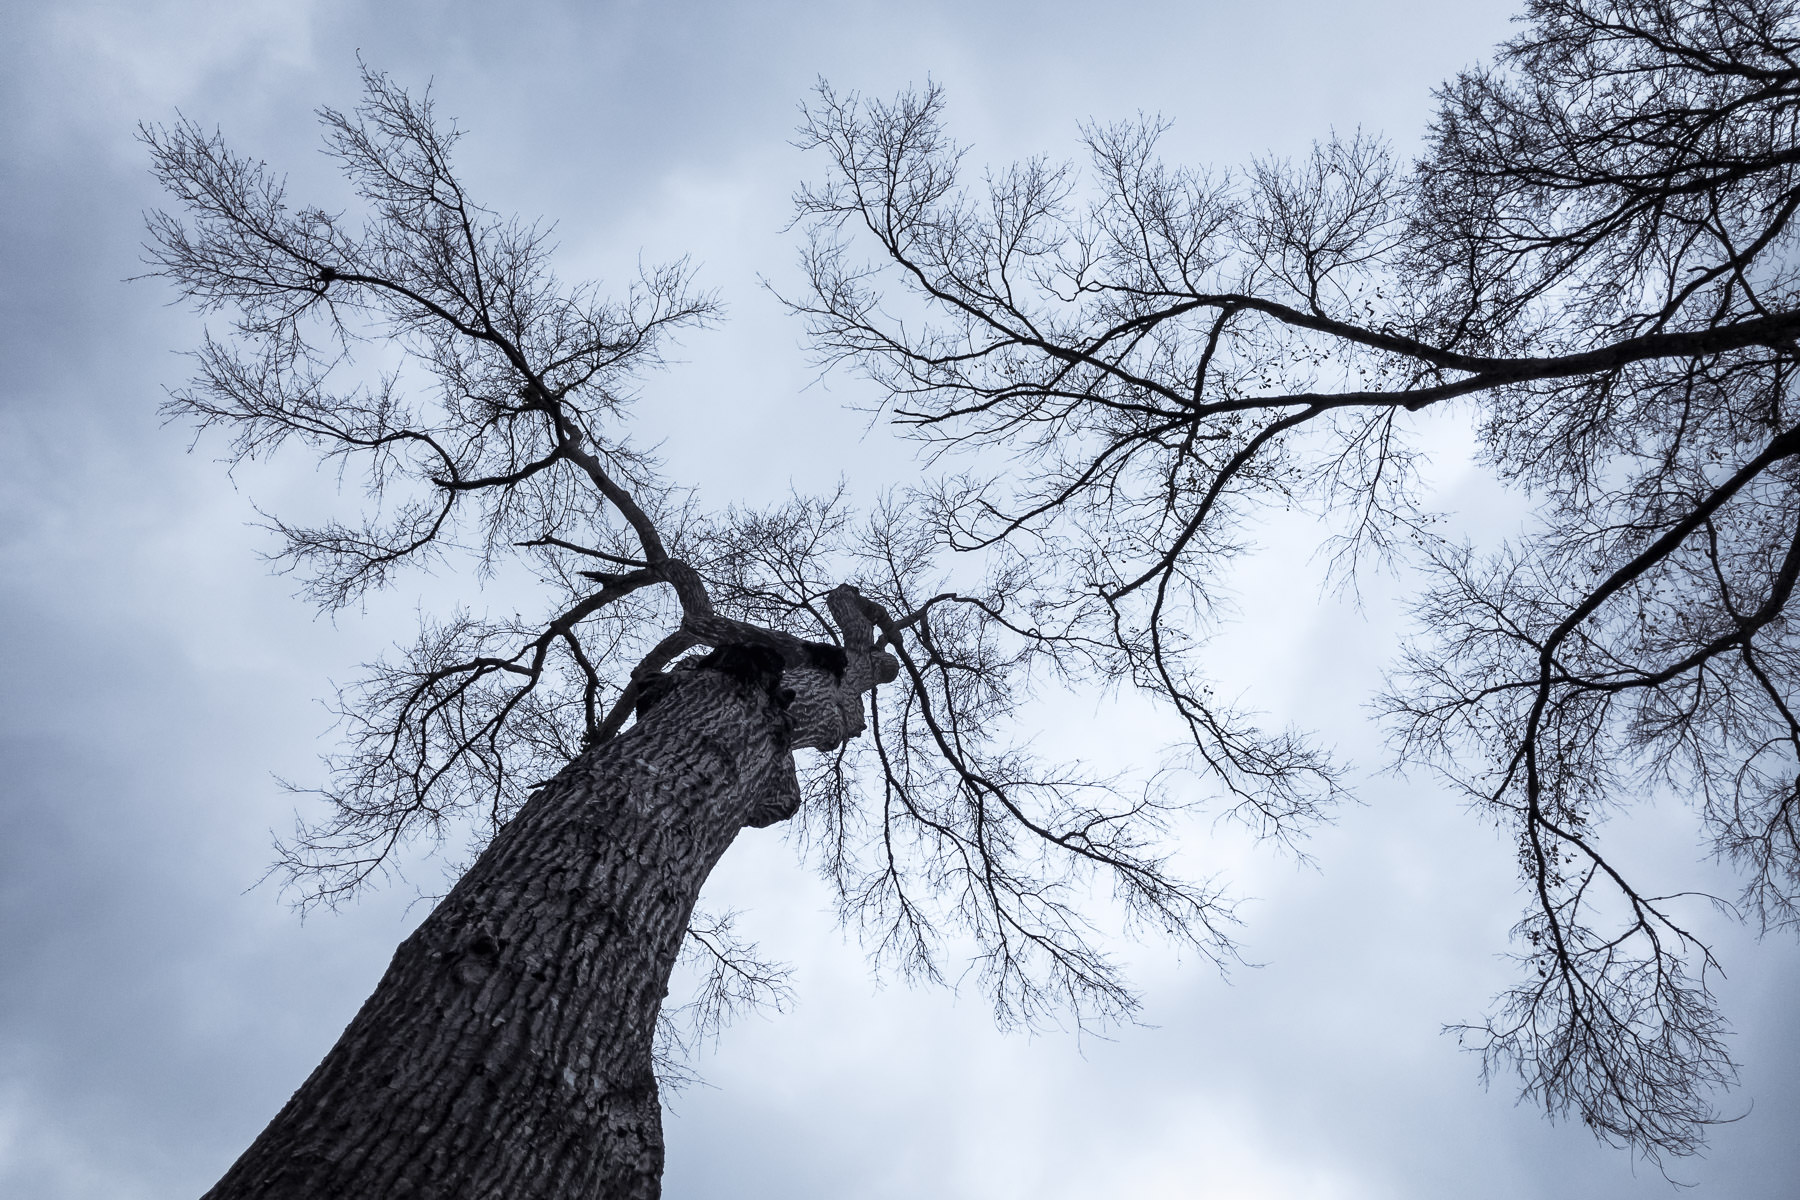 Trees, stripped of their leaves, reach into the cold winter sky over Tyler, Texas.